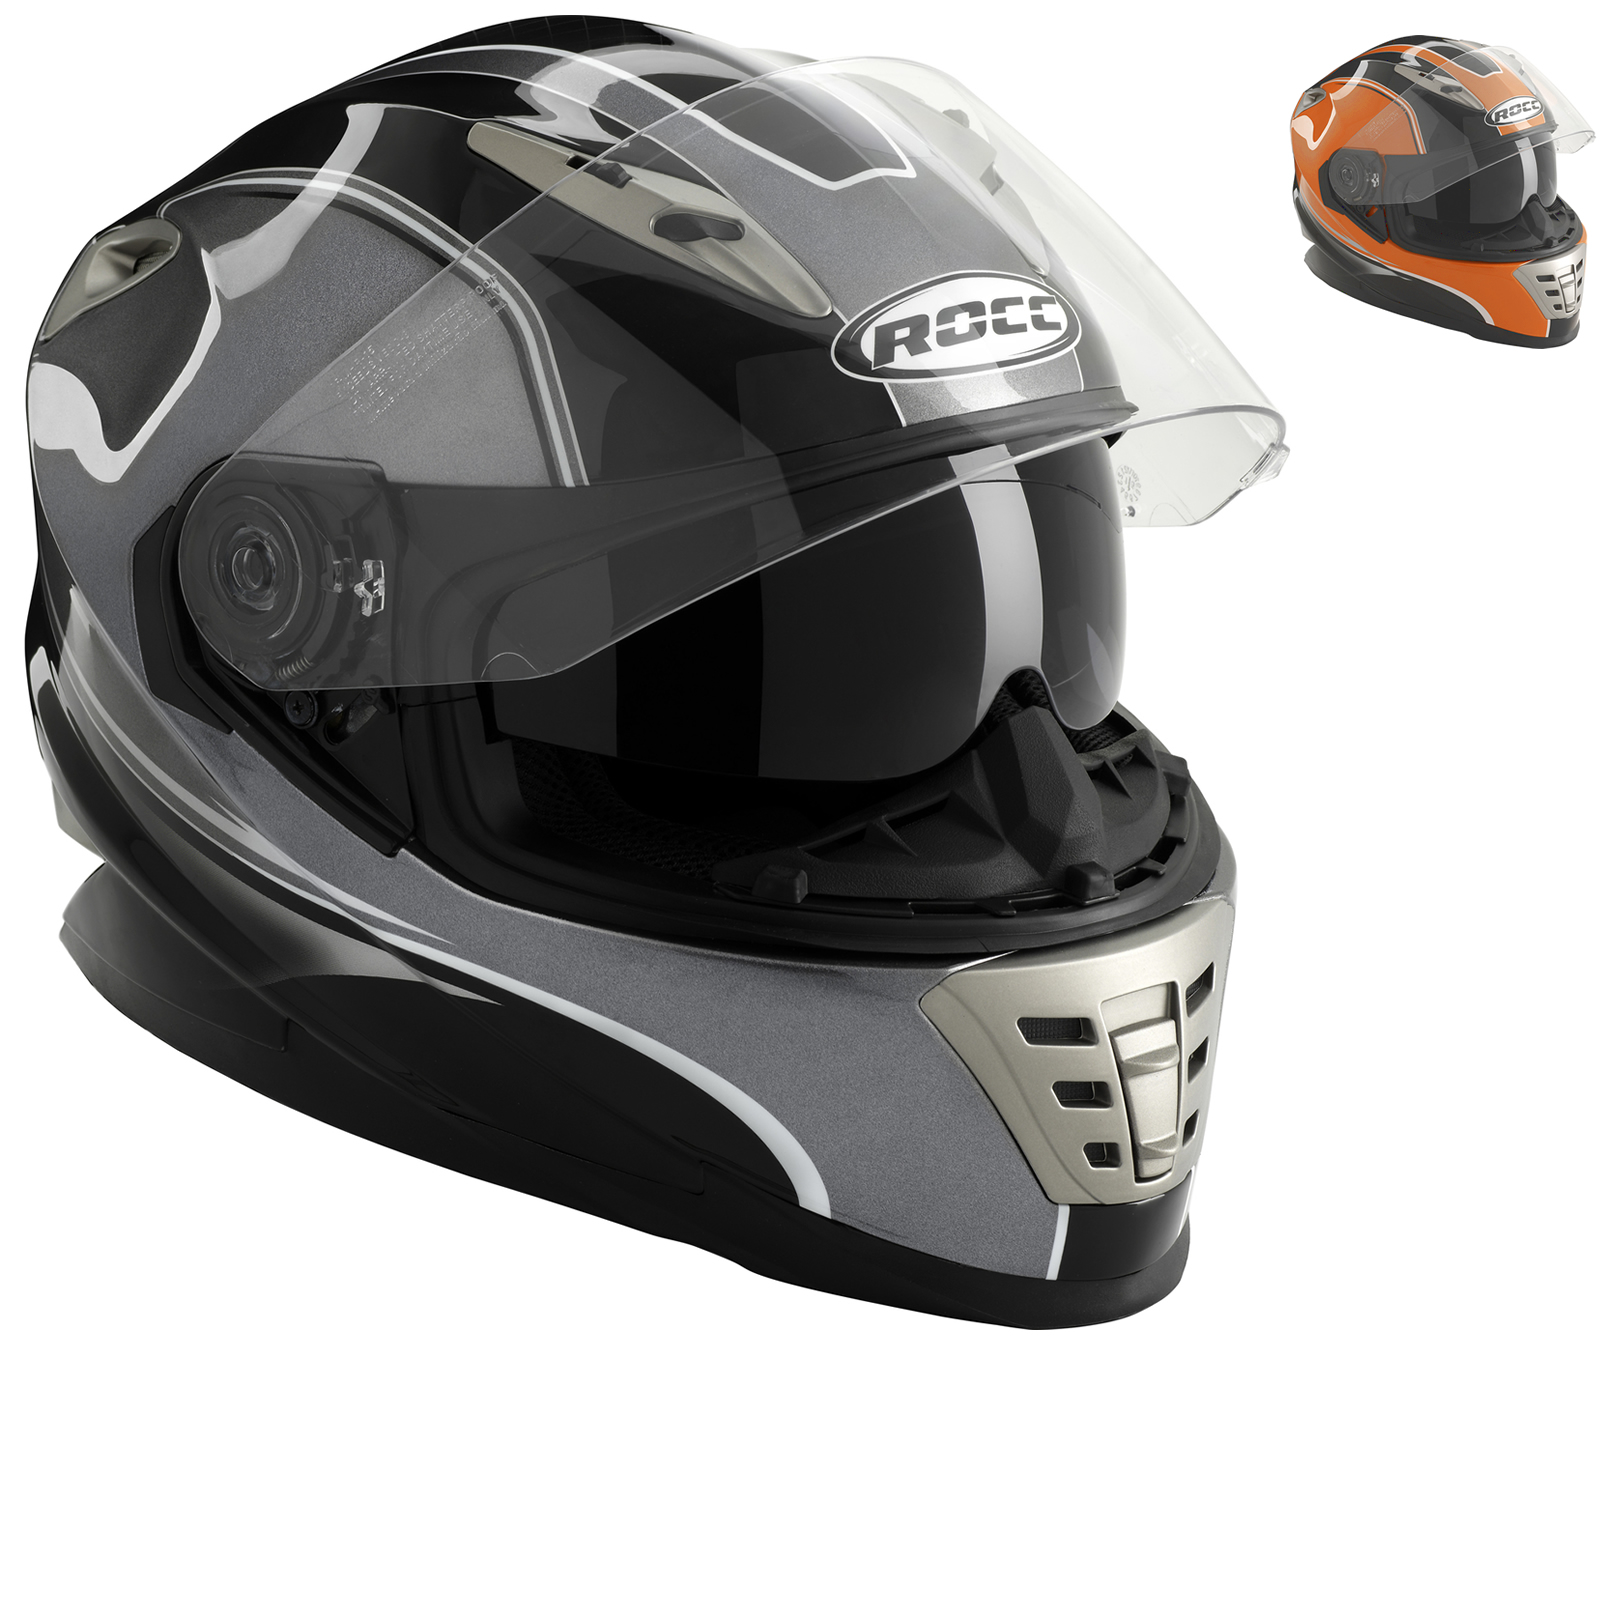 ROCC 485 Motorcycle Helmet Full Face Helmets Ghostbikes